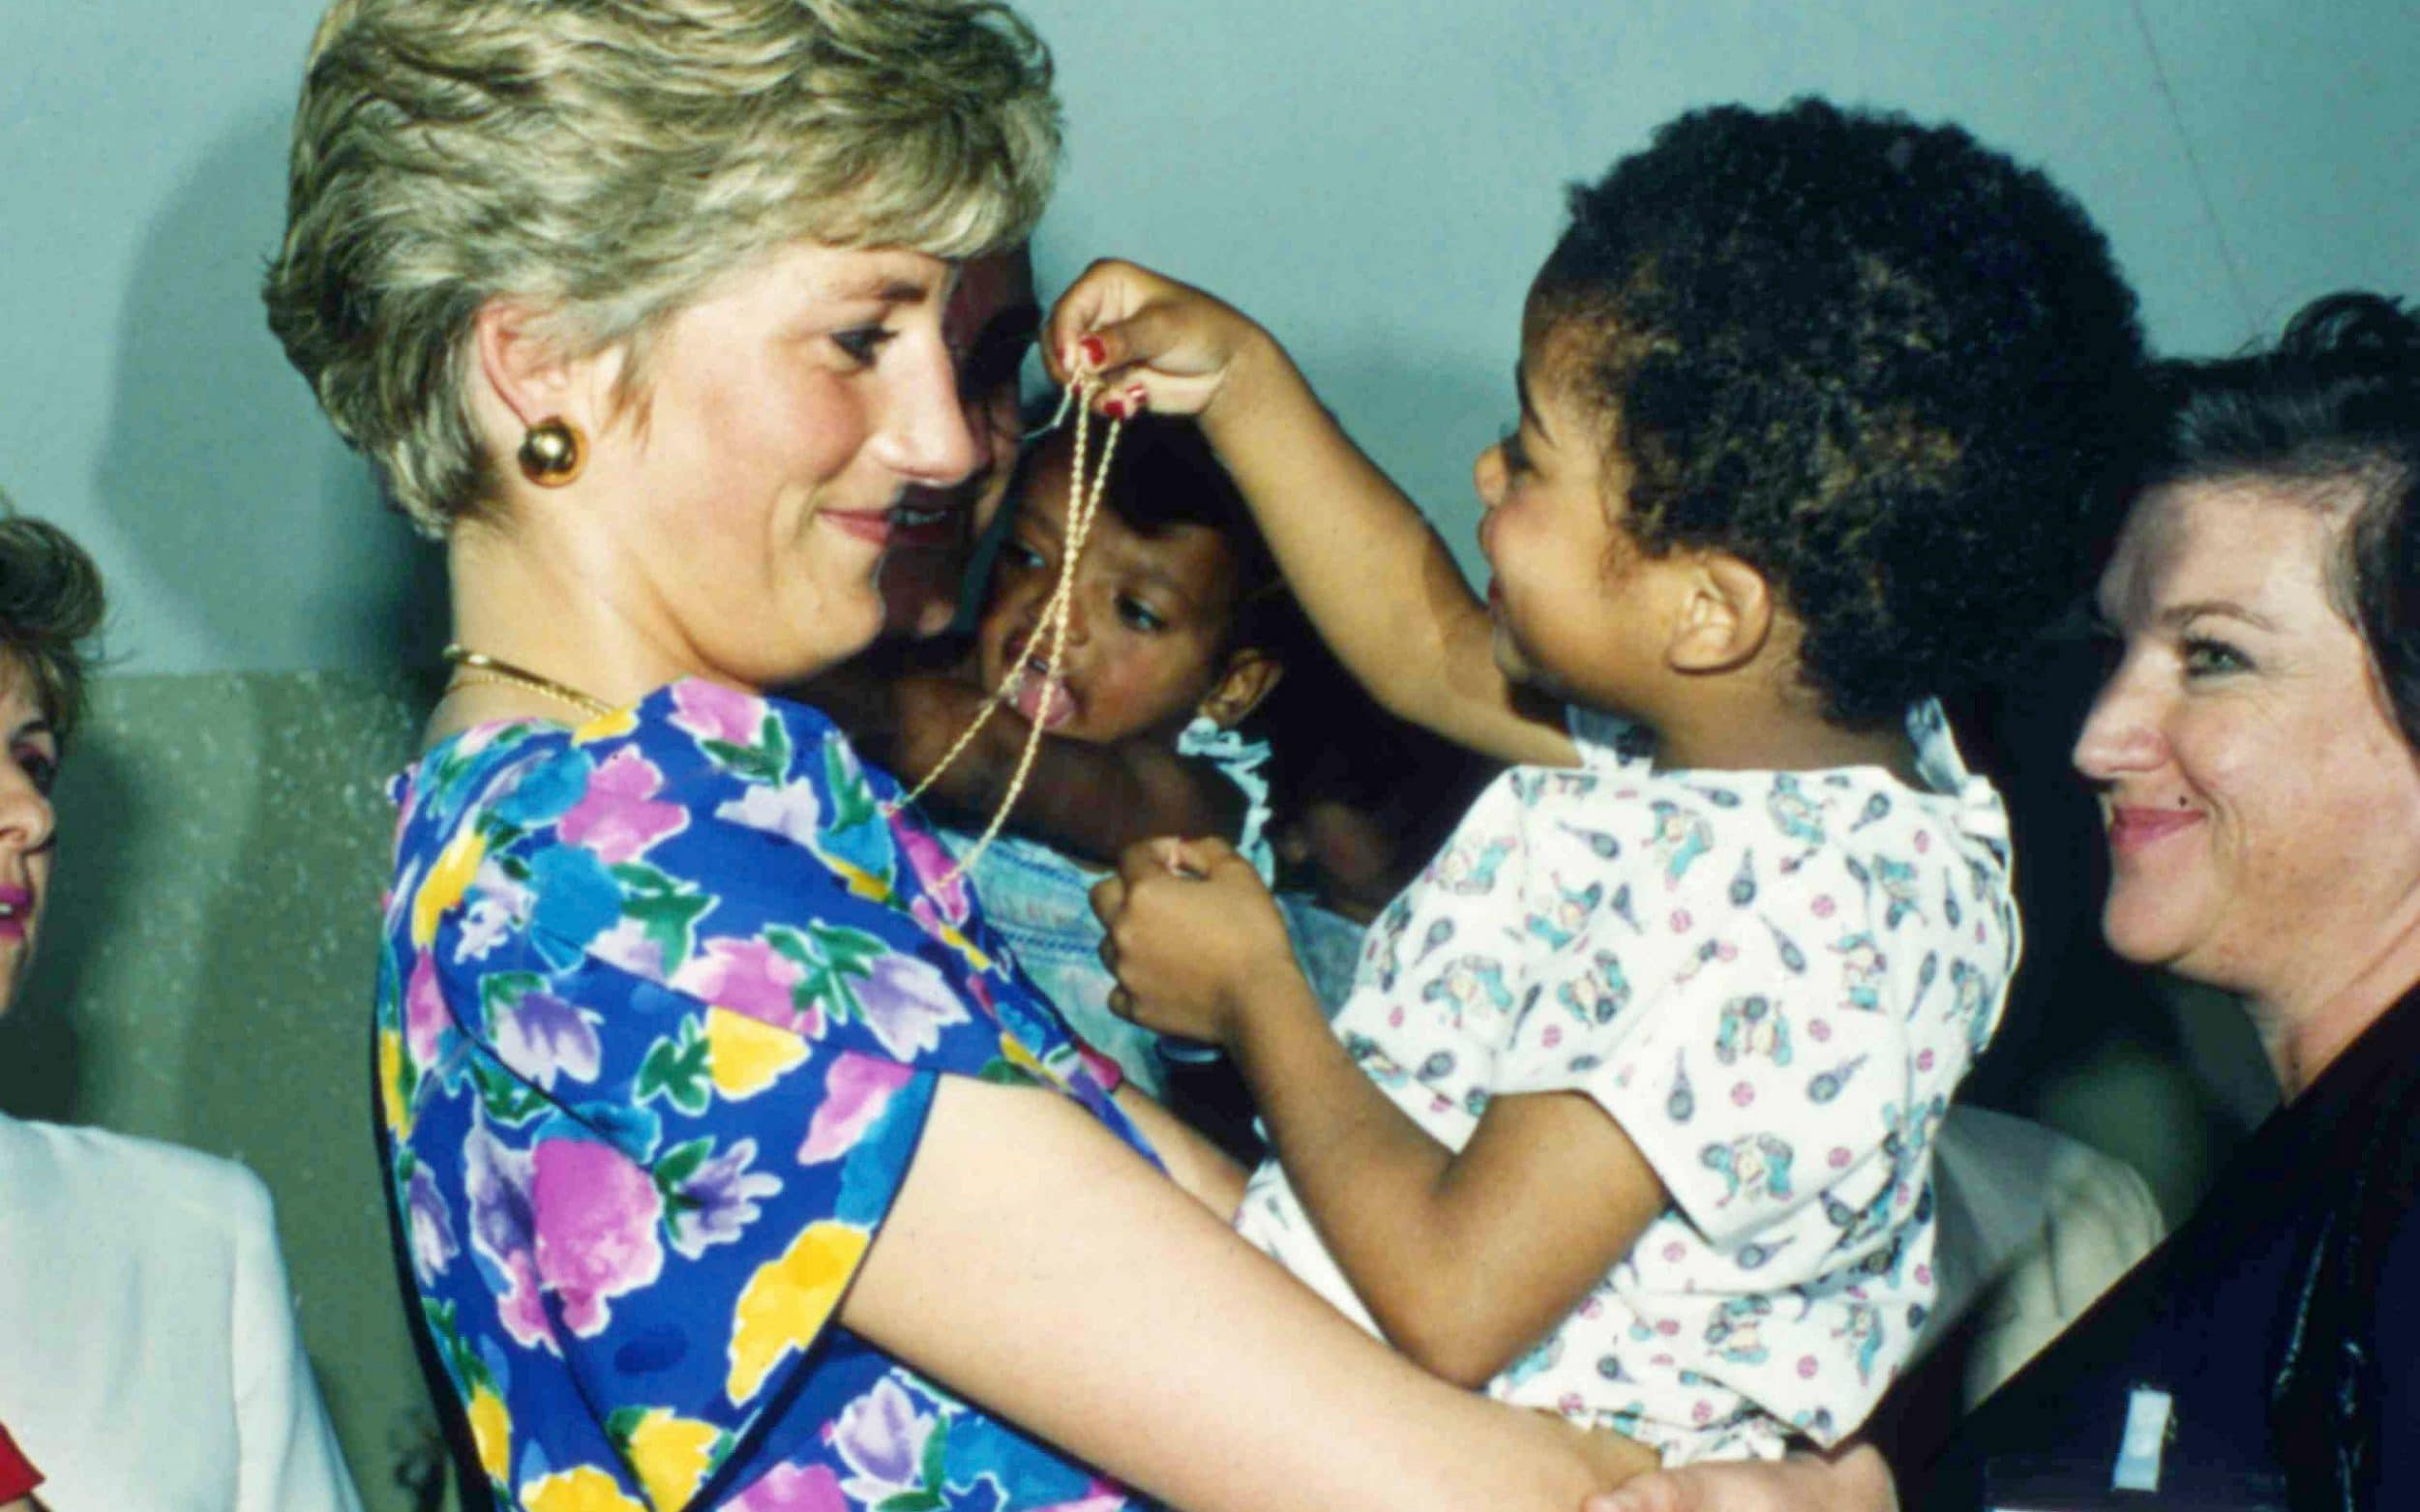 Princess Diana is pictured here holding a young child in her arms as the child plays with her necklace.